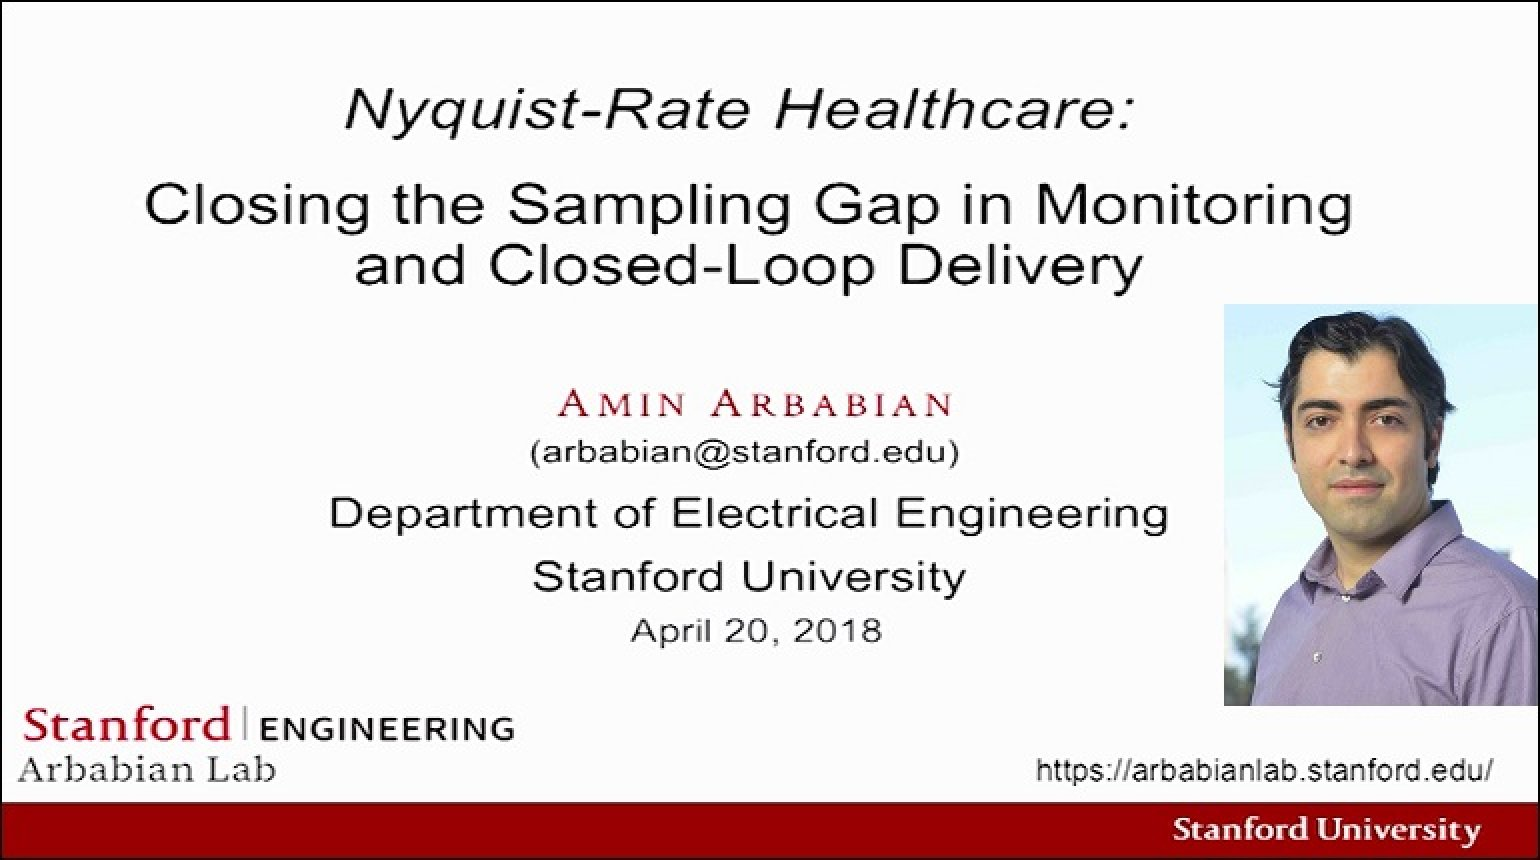 Nyquist-Rate Healthcare: Silicon Systems to Close the Sub-Sampling Gap in Health Monitoring Video